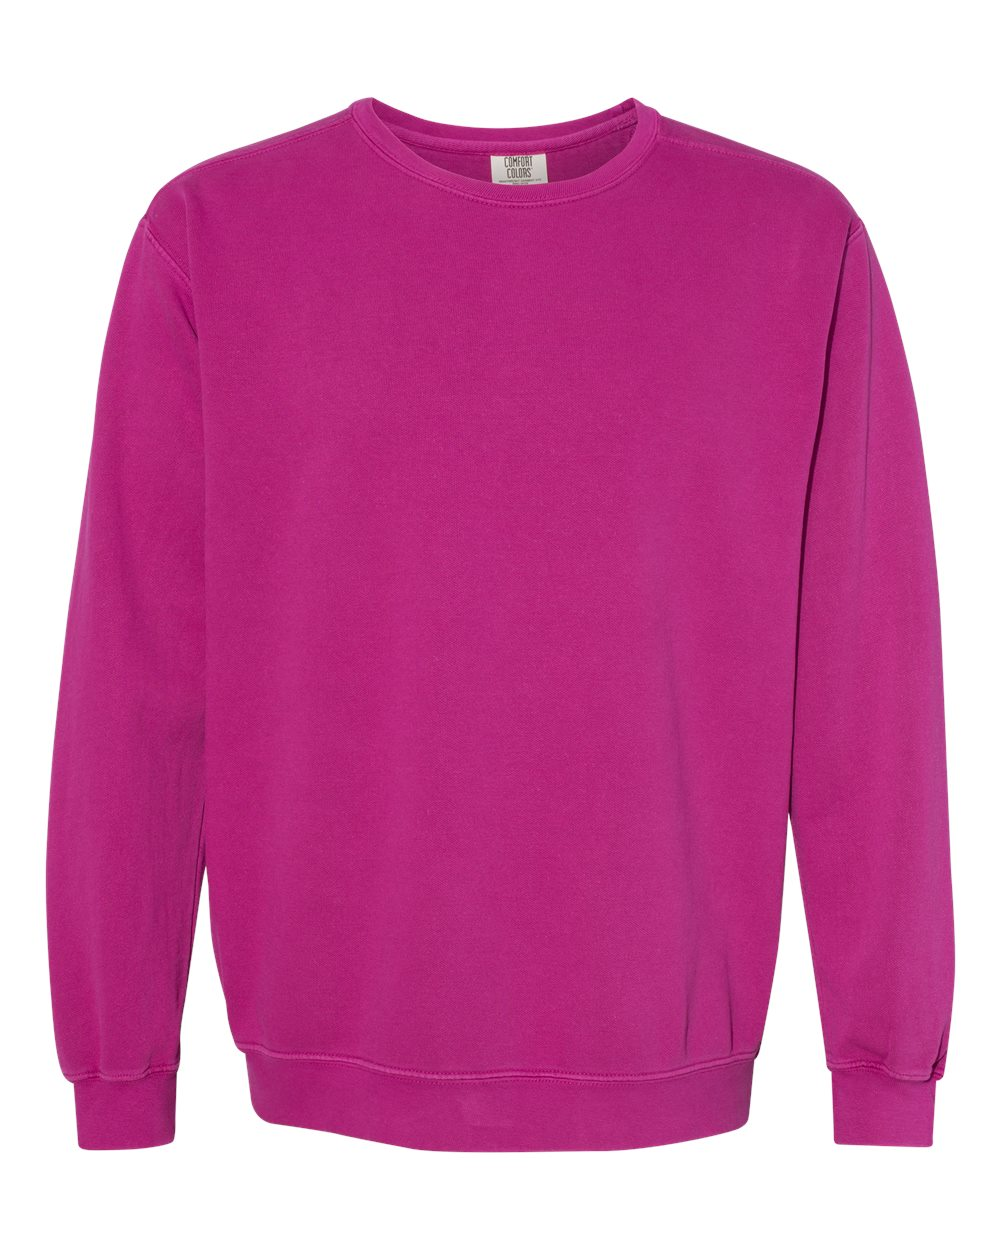 Comfort-Colors-Mens-Garment-Dyed-Ringspun-Crewneck-Sweatshirt-1566-up-to-3XL miniature 12